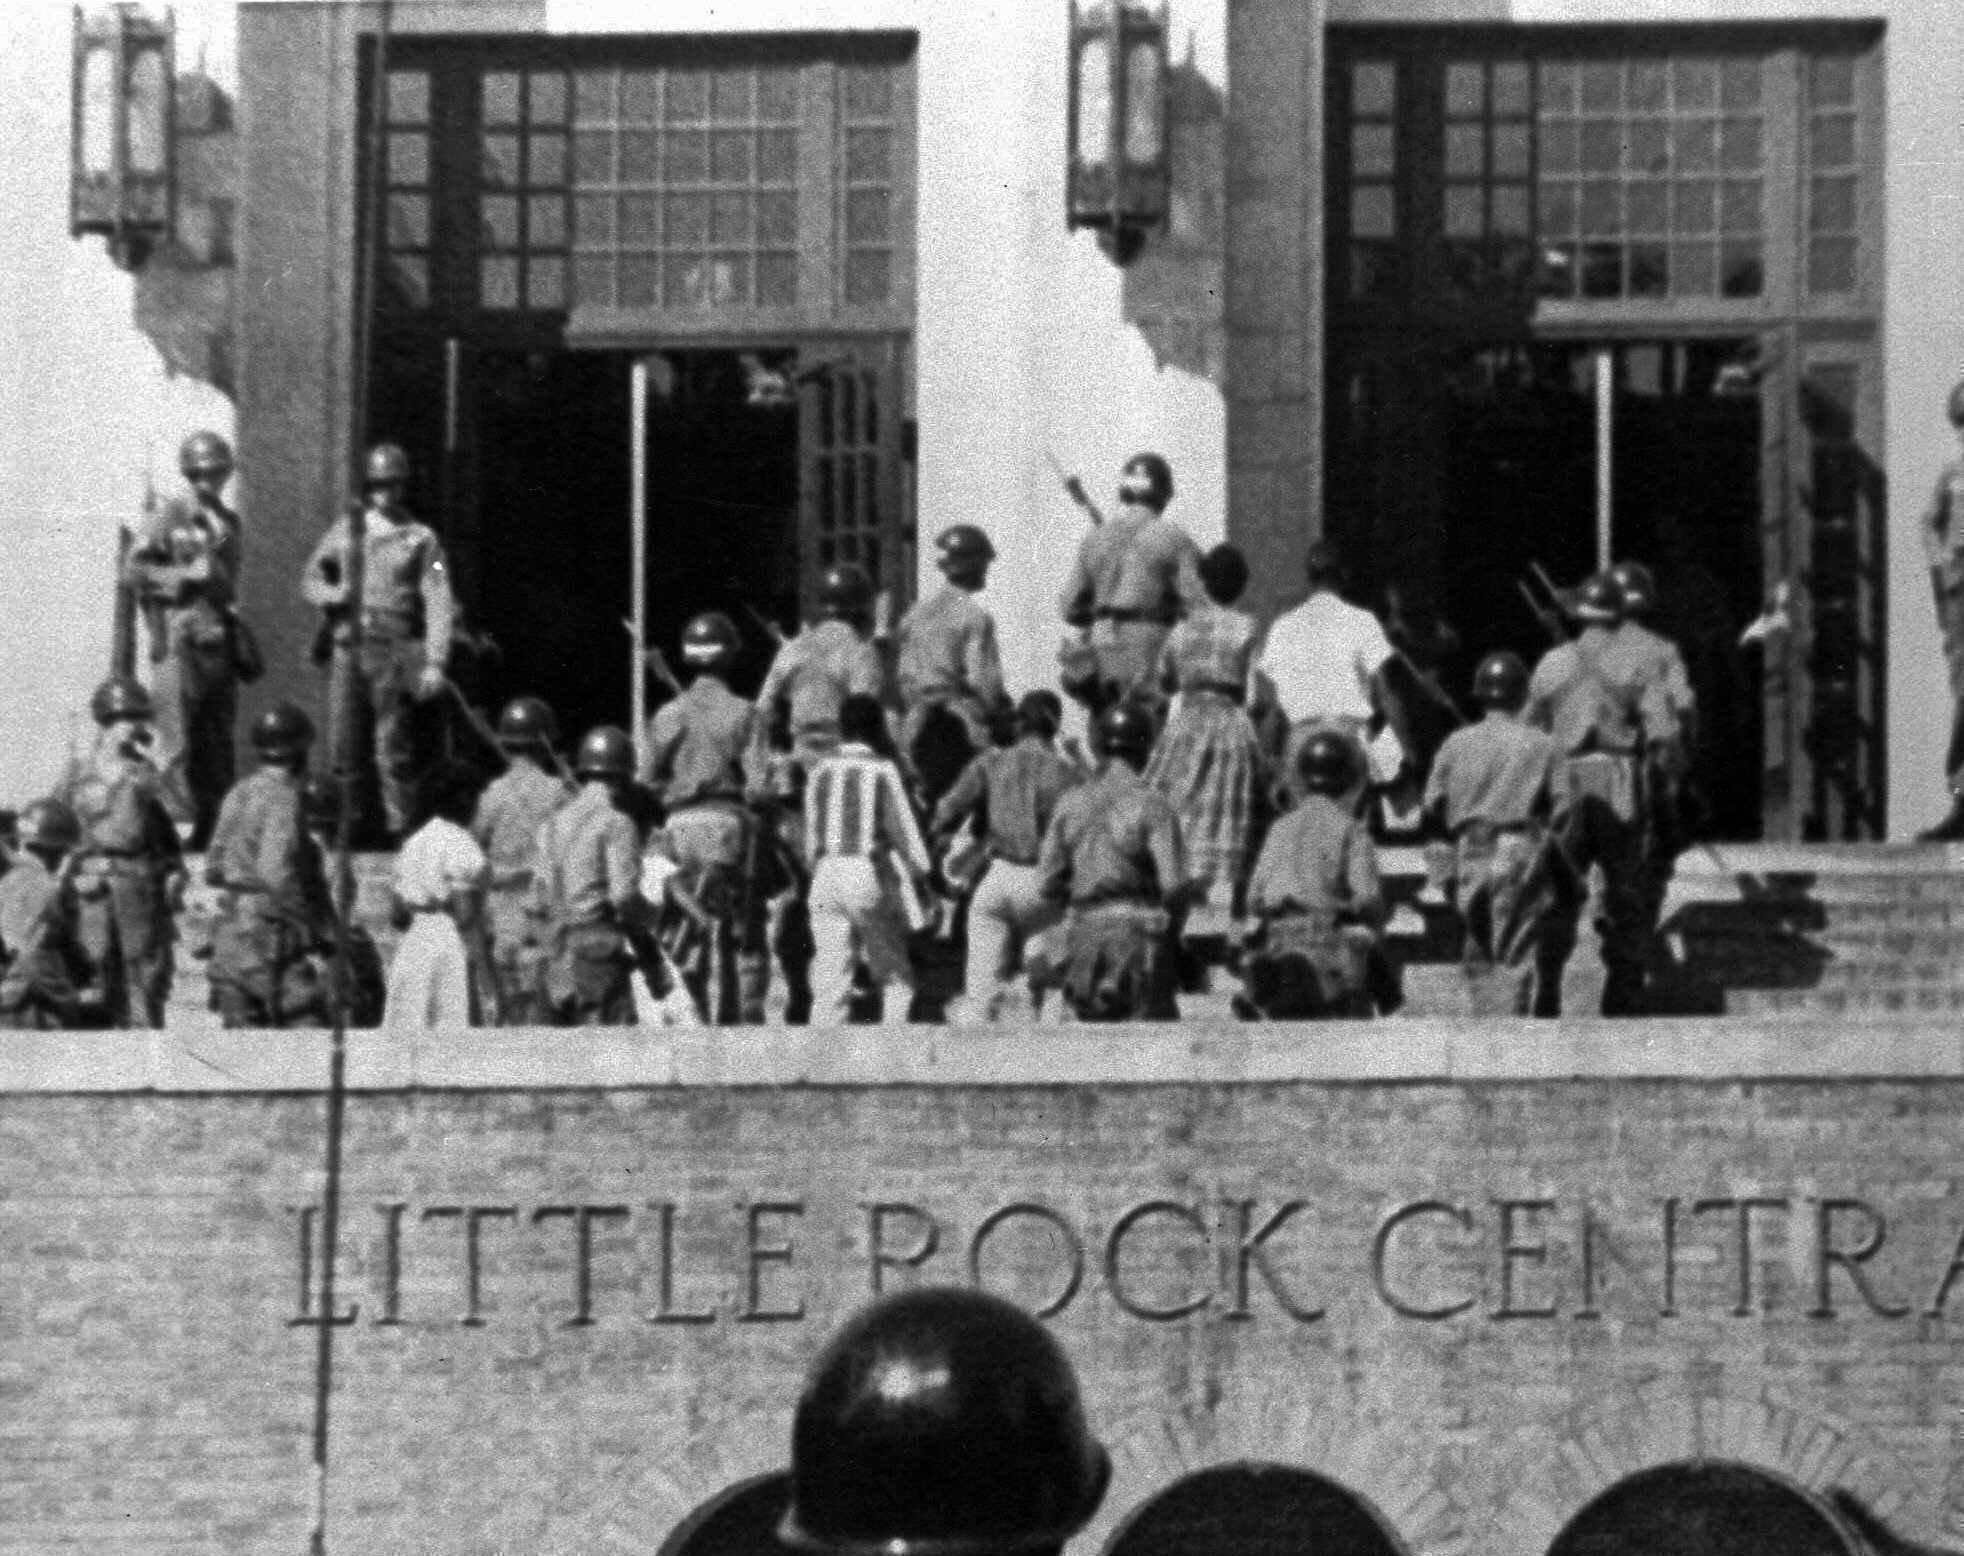 School Segregation in America is as Bad Today as it Was in the 1960s